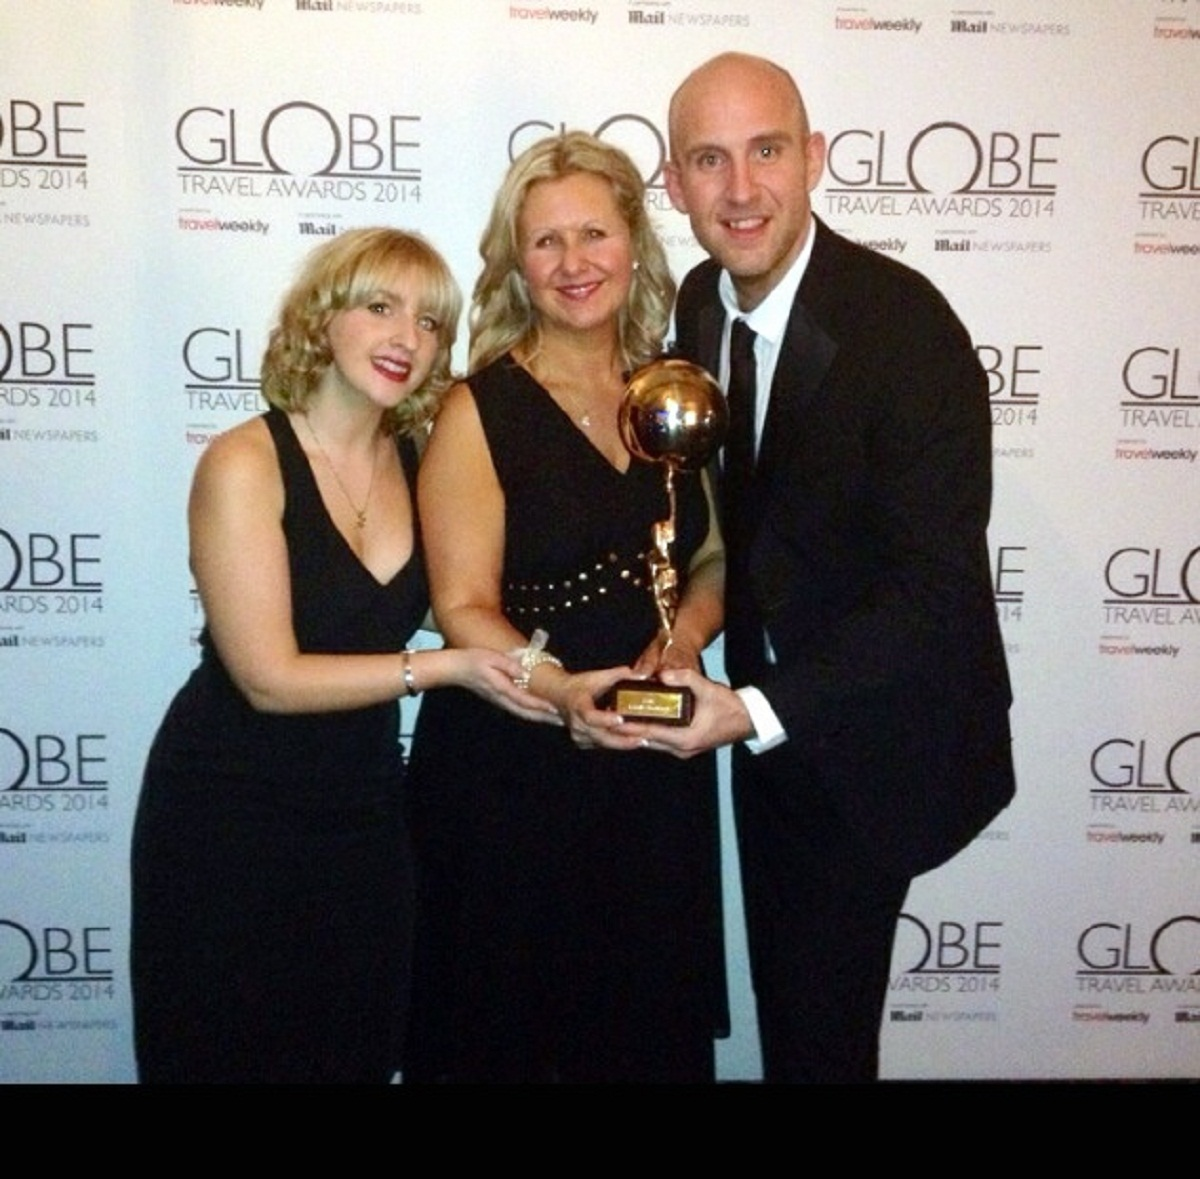 Double joy with awards for Leeds Bradford Airport and airline